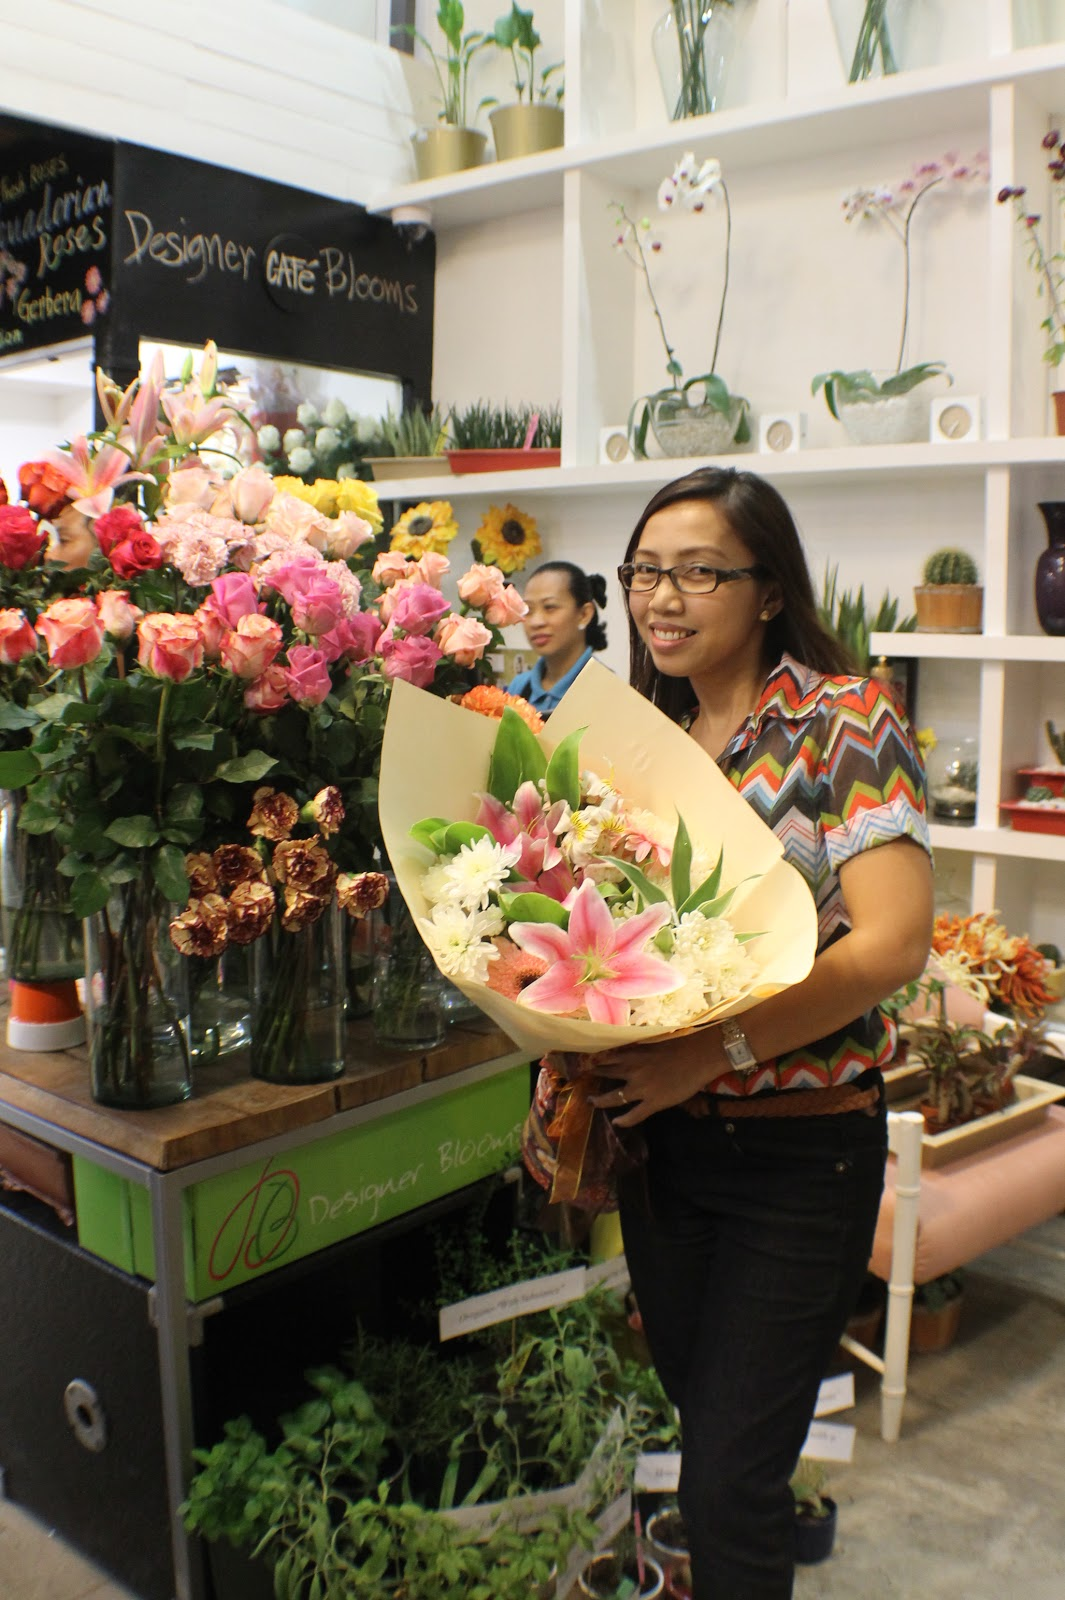 Gastronomy By Joy Designer Blooms Cafe First Fresh